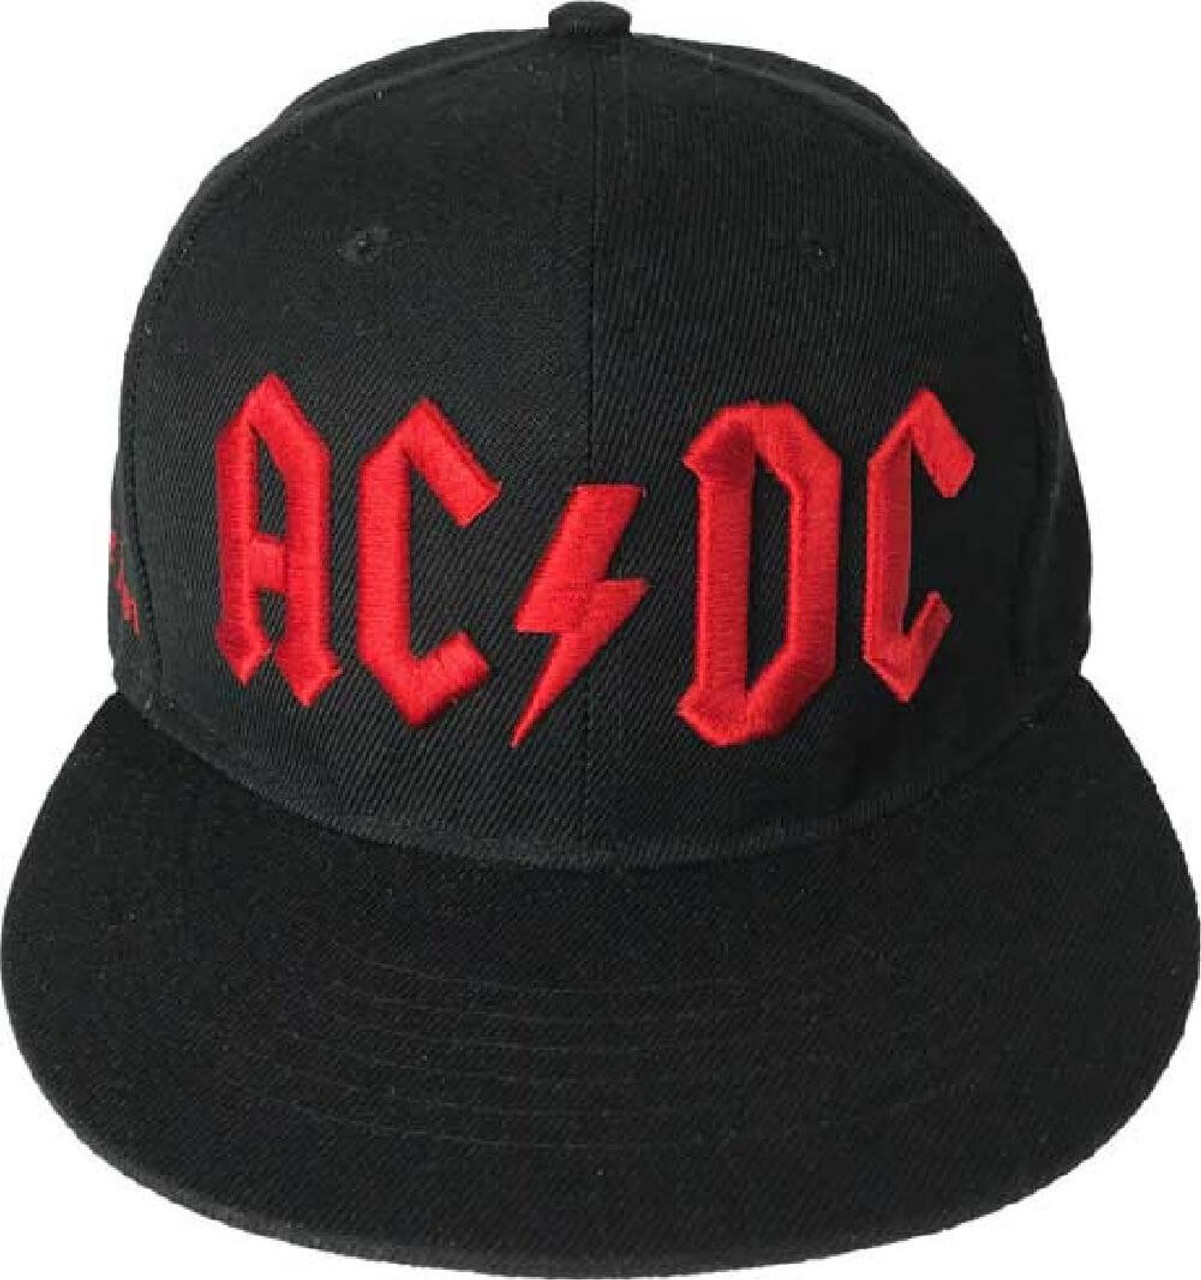 AC DC Logo Black Baseball Hat  547bad3d4d0